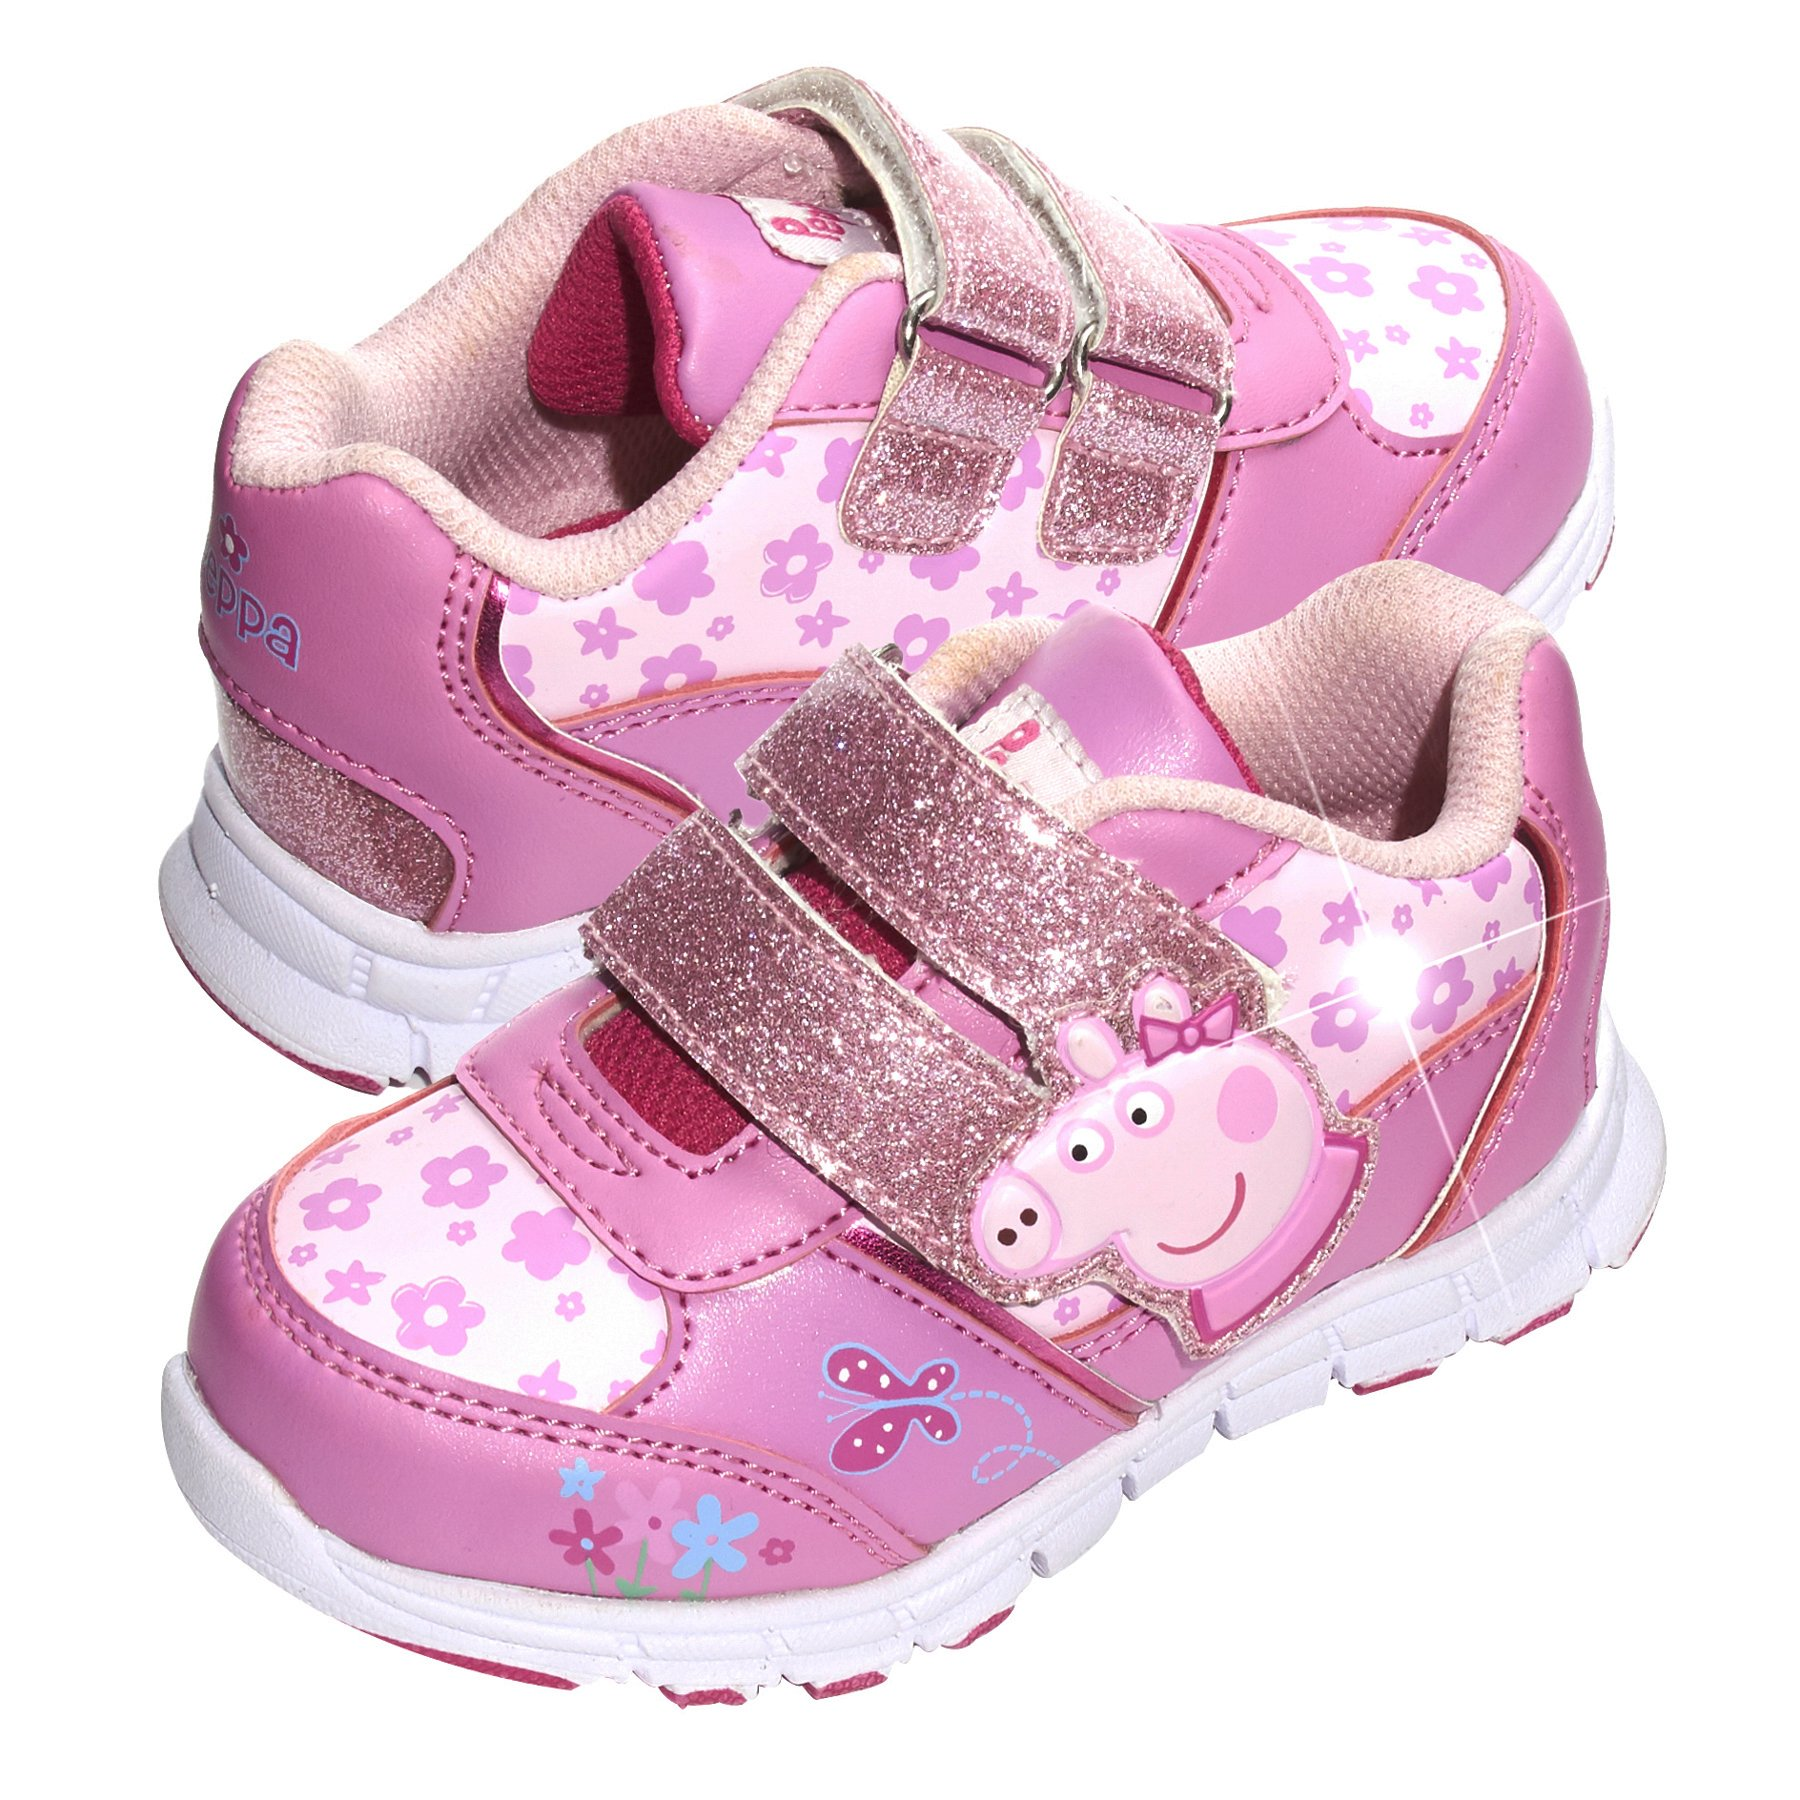 Peppa Pig Toddler Girl's Light up Sneakers 12 - Pink